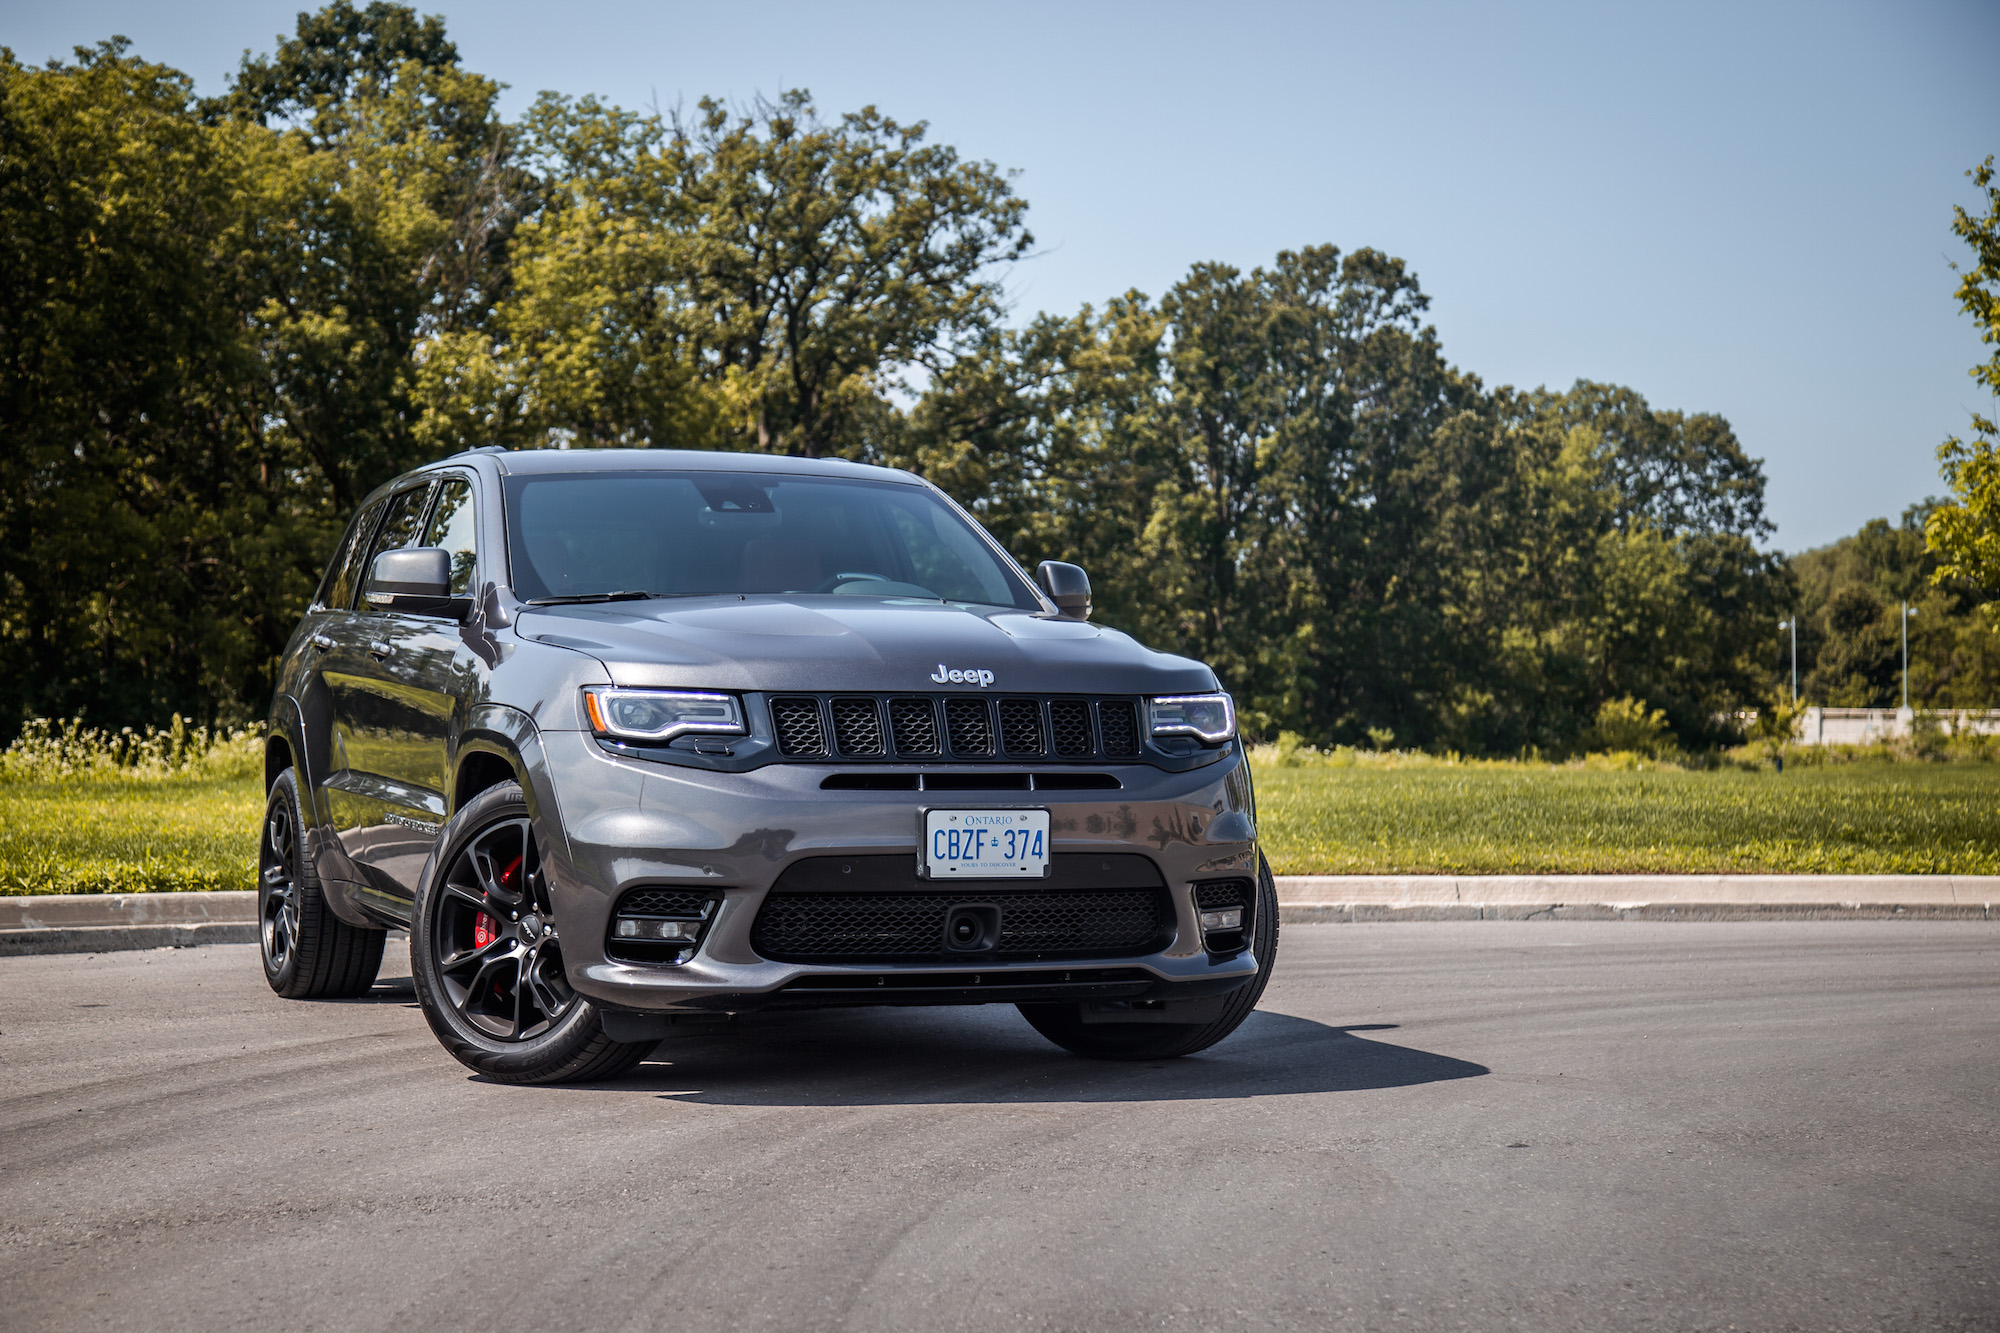 2017 Grand Cherokee Srt Interior >> Review: 2017 Jeep Grand Cherokee SRT | Canadian Auto Review